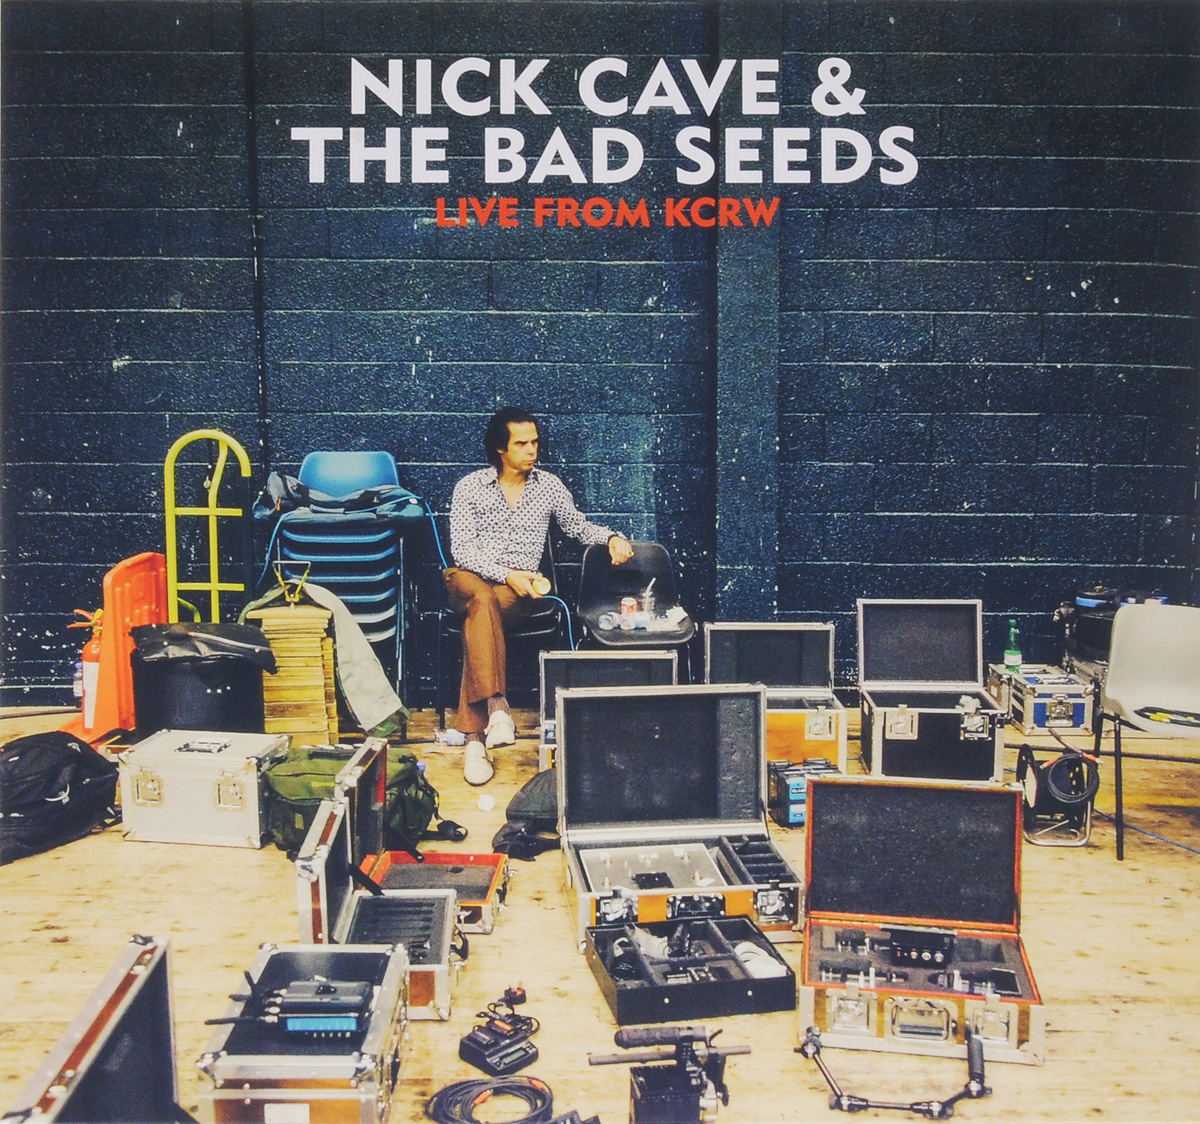 Ник Кейв,The Bad Seeds Nick Cave & The Bad Seeds. Live From KCRW (2 LP) nick cave and the bad seeds one more time with feeling 2 blu ray